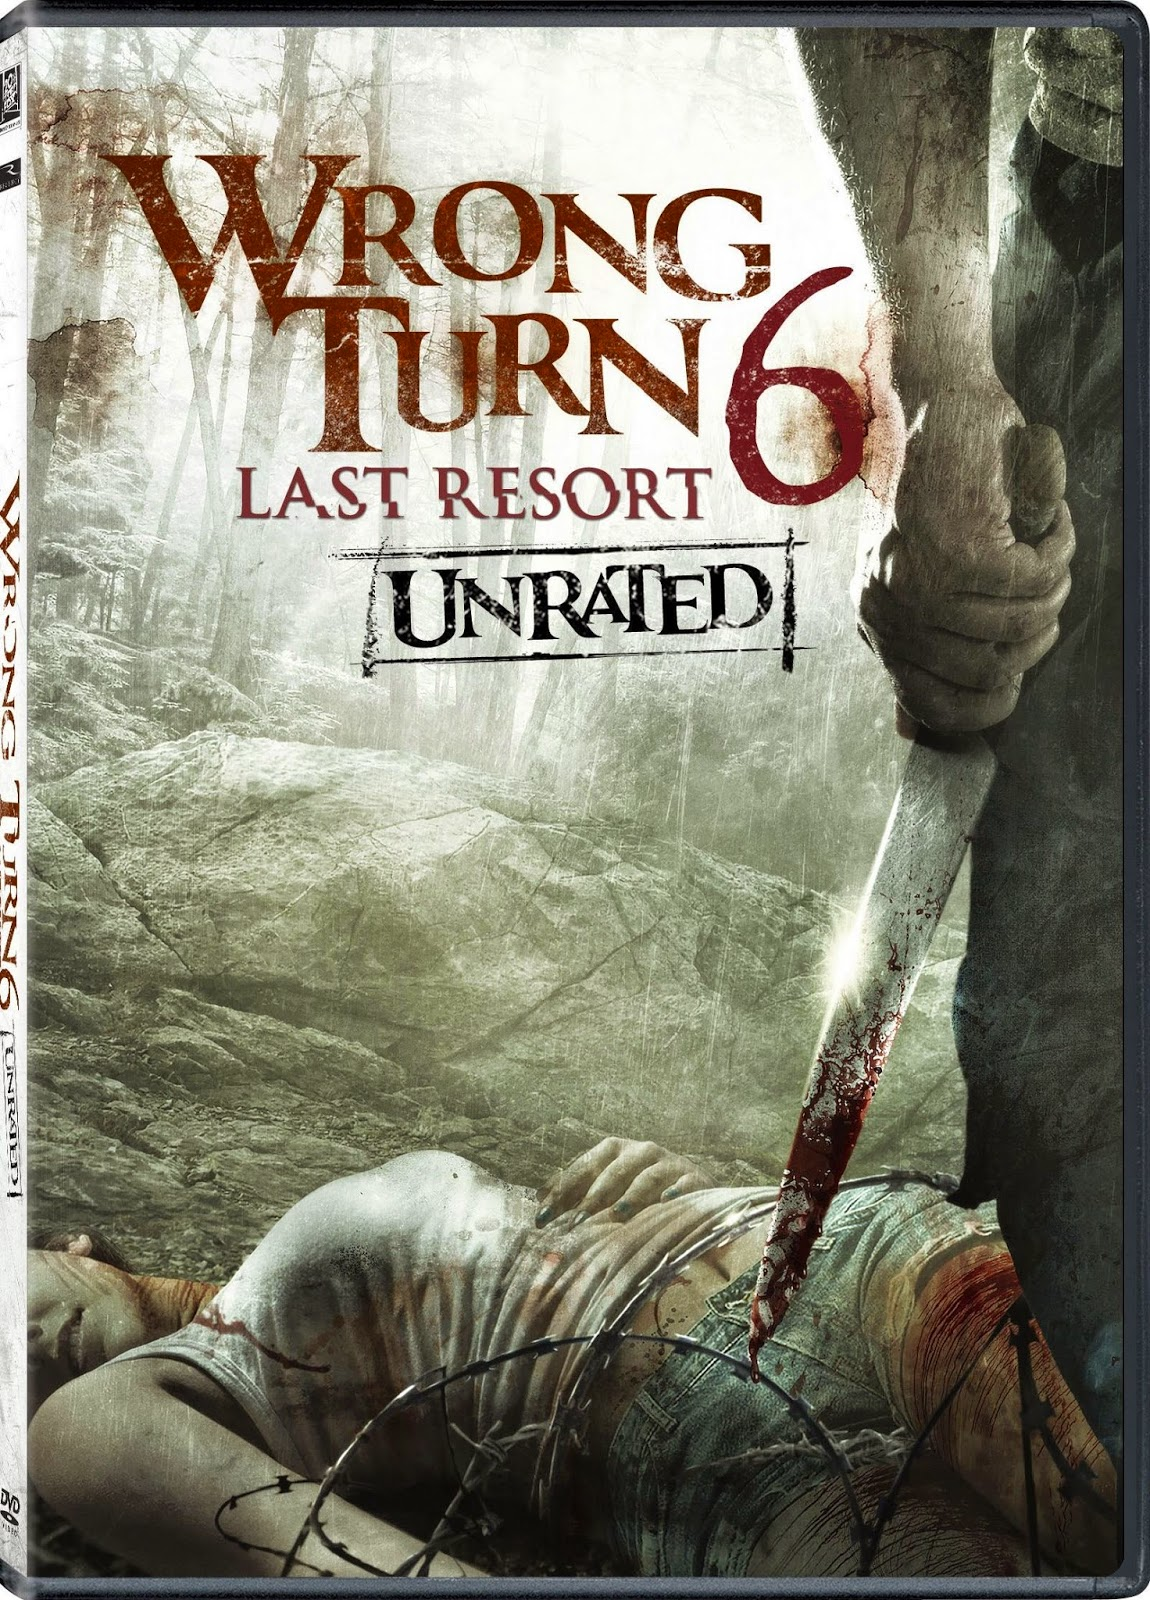 Download Film WRONG TURN 6: LAST RESORT